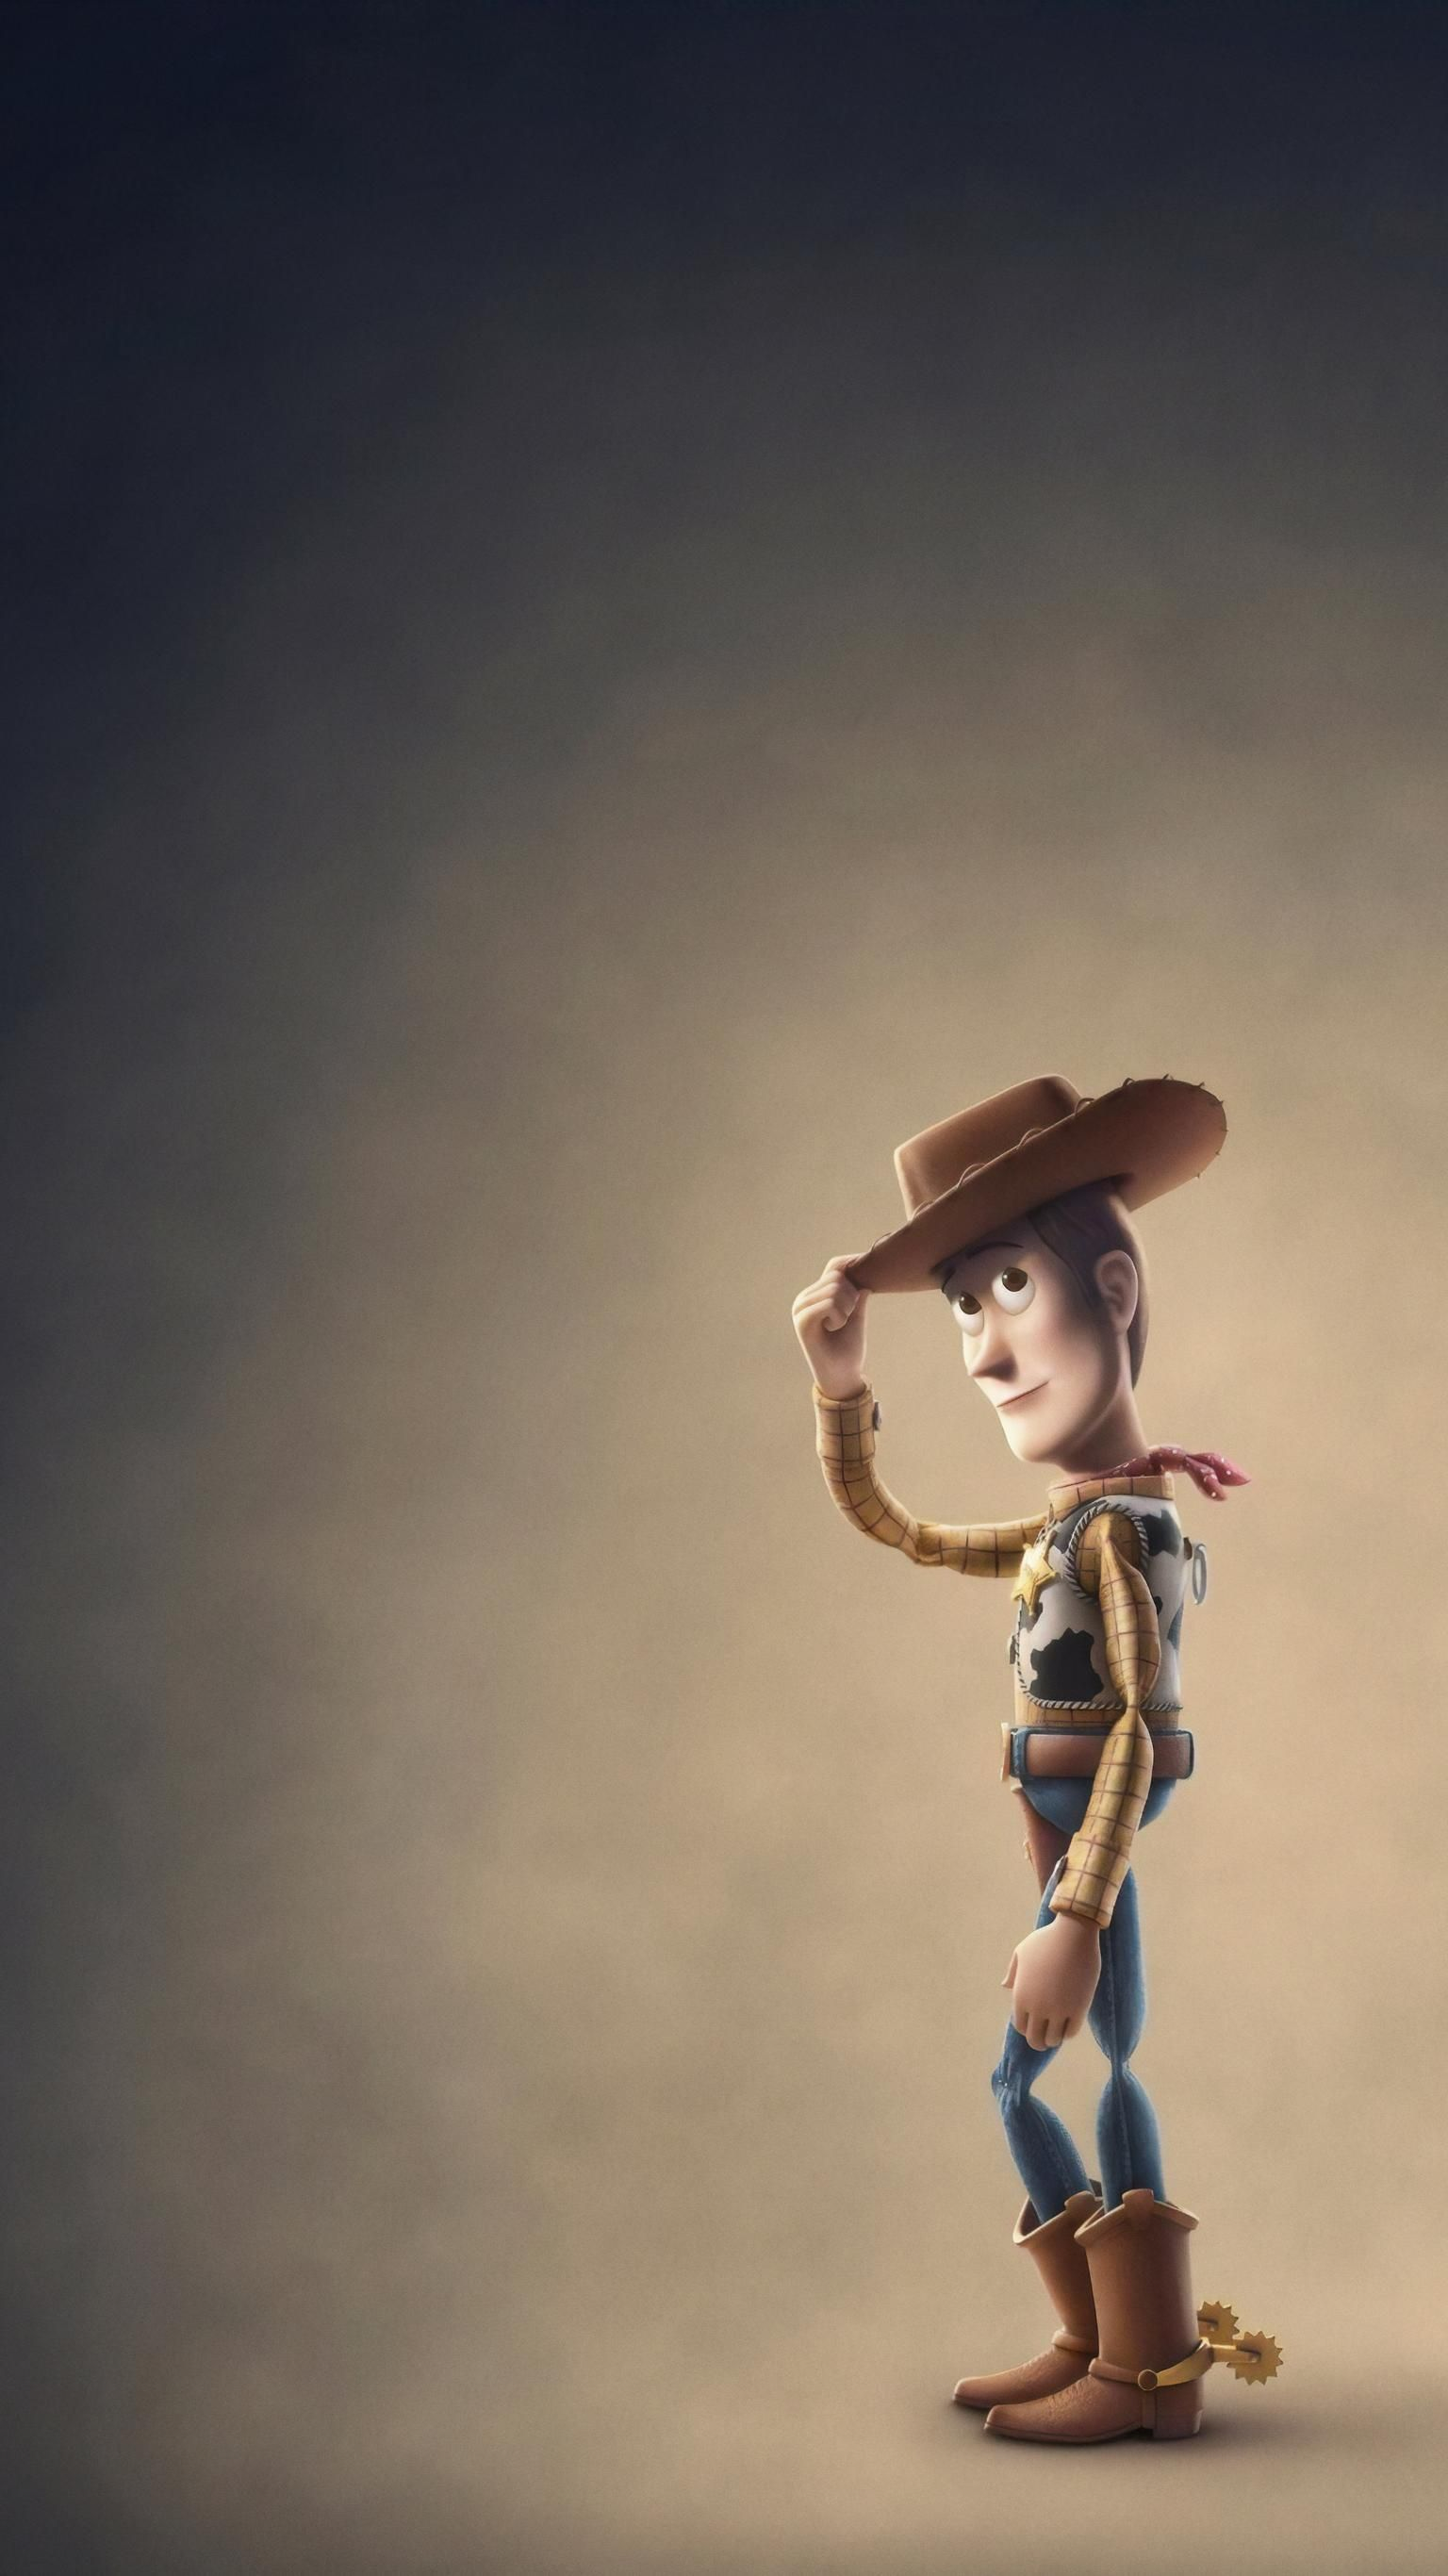 Toy Story 4 (2019) Phone Wallpaper in 2020 Toy story